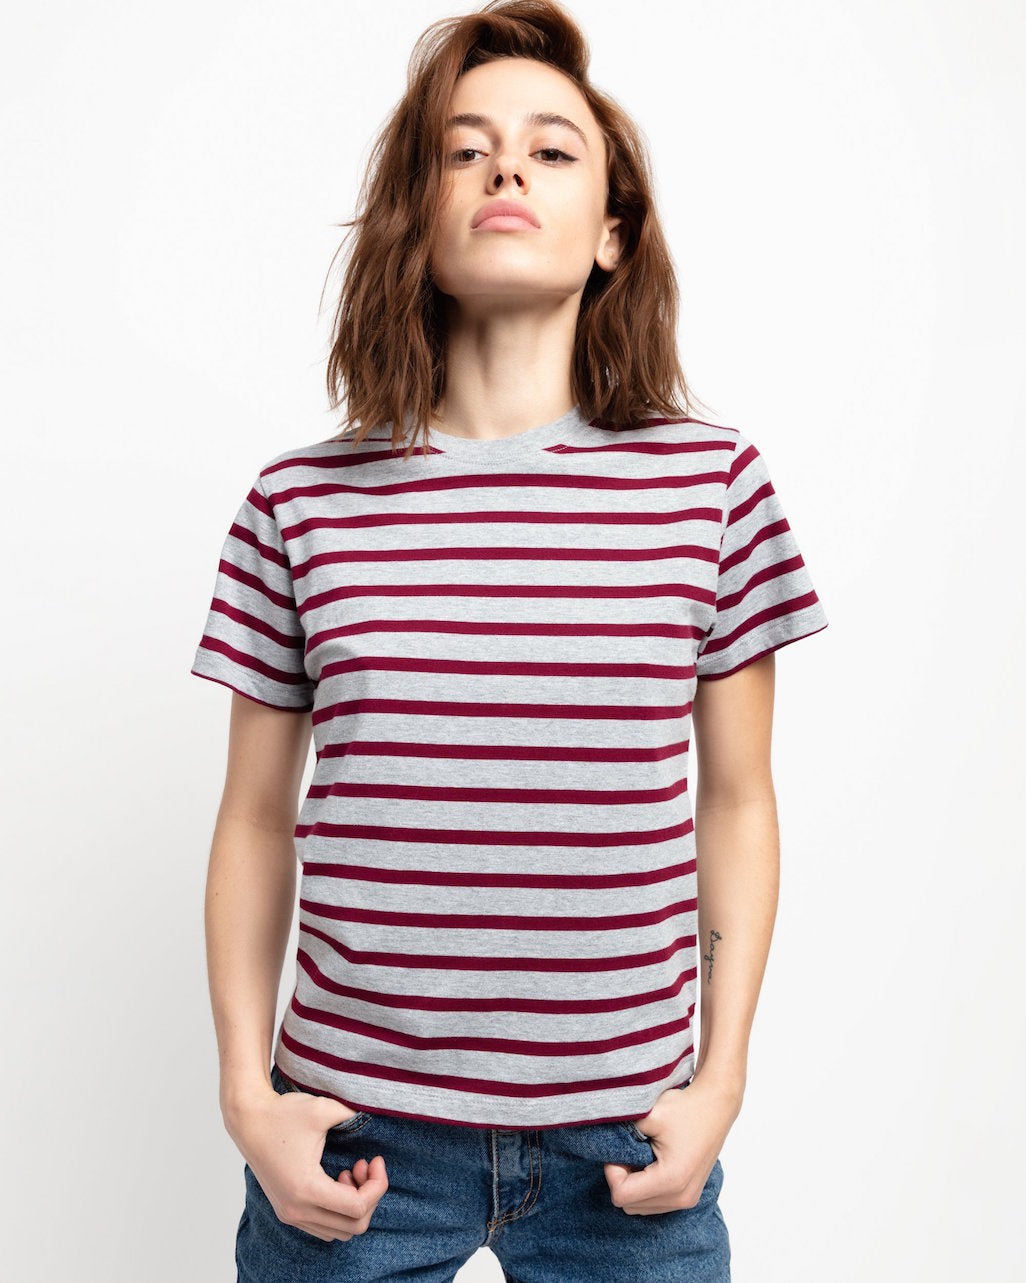 x karla The Crew, Grey/Burgundy Stripe